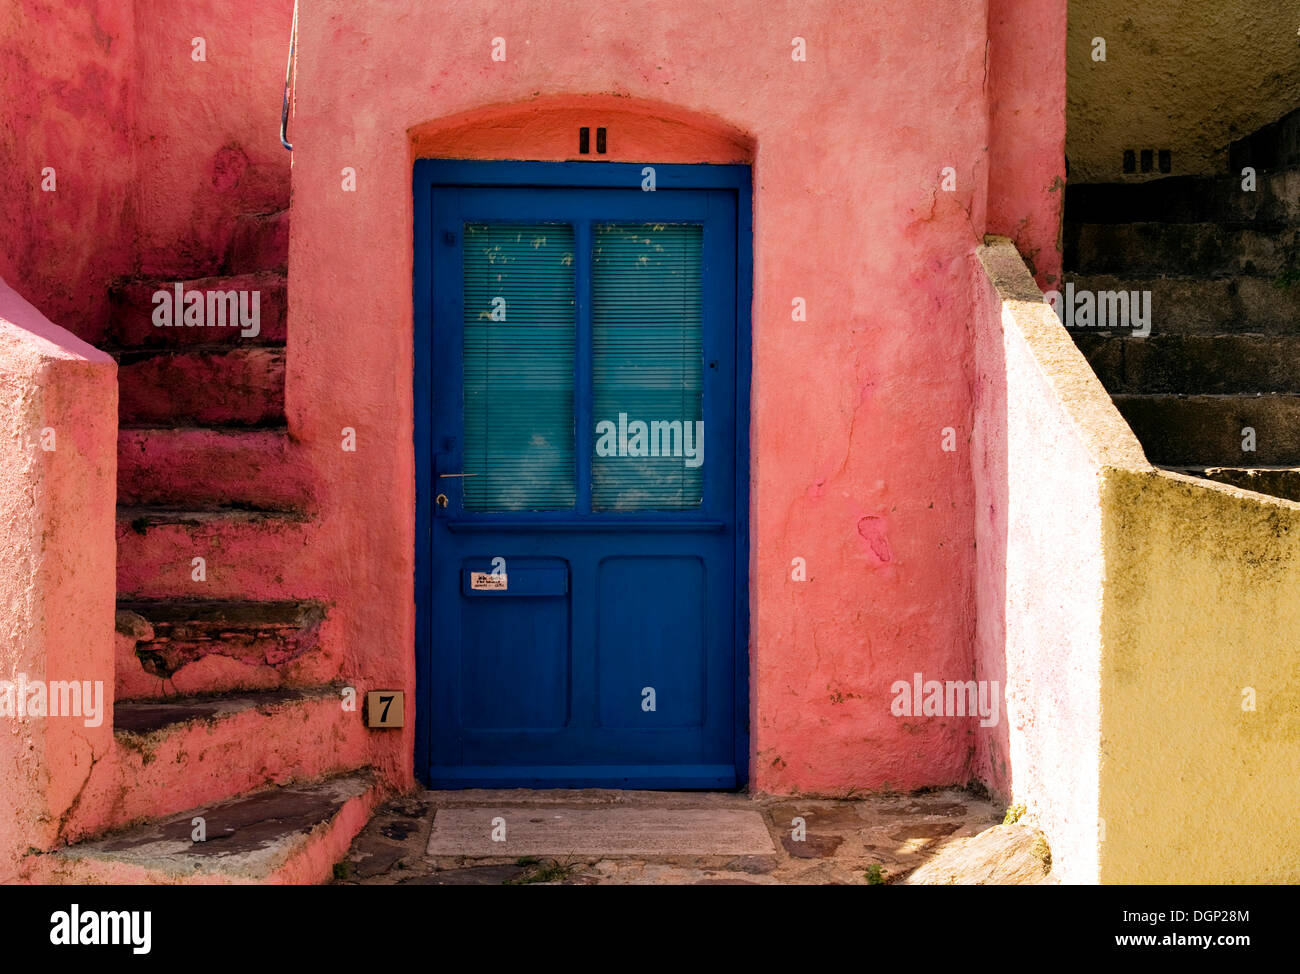 Blue front door with pink facade Colliure Languedoc-Roussillon France Europe & Front Door Front Doors Stairs Stairway Stairways Staircase ...